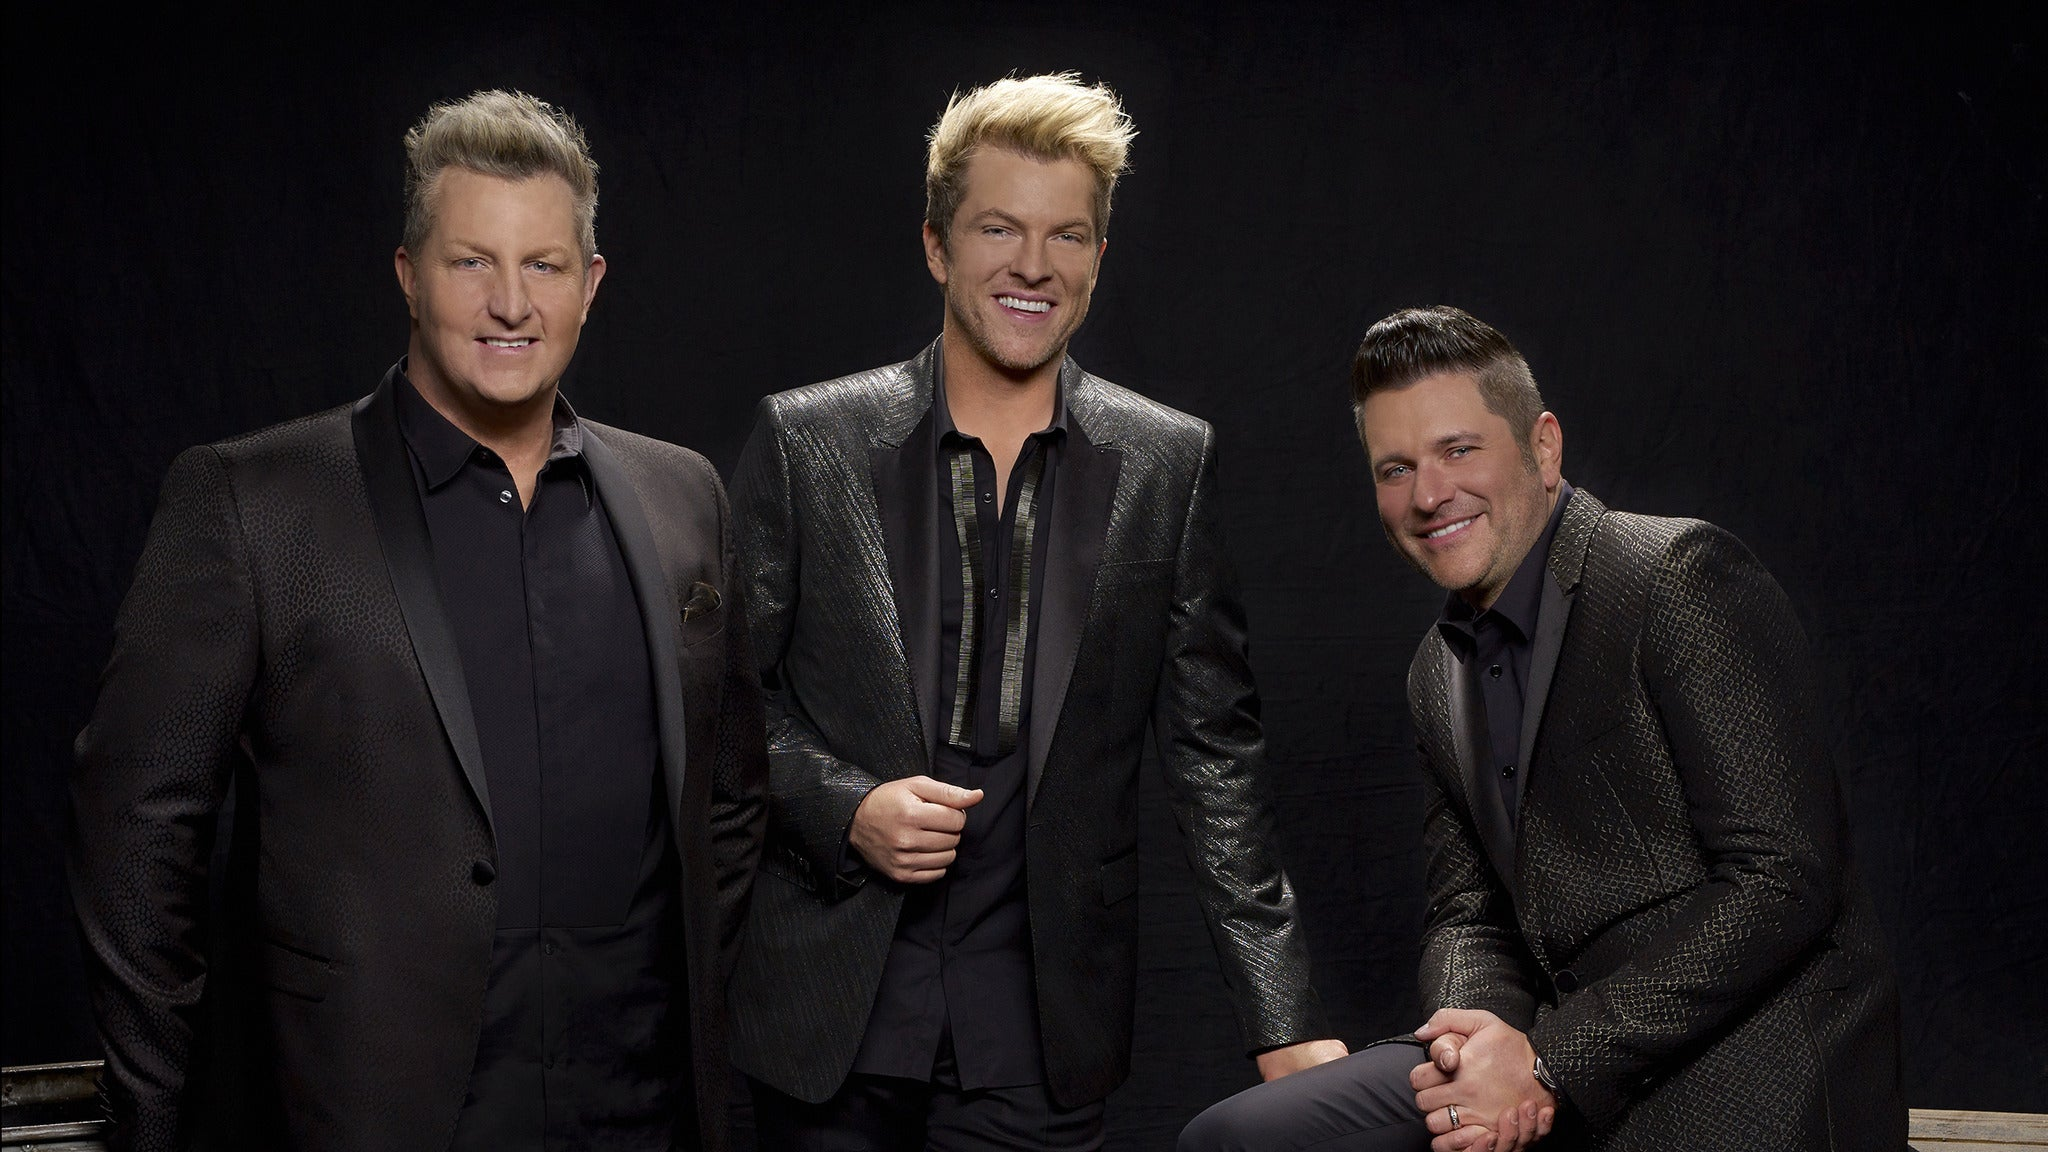 Rascal Flatts: Summer Playlist Tour 2019